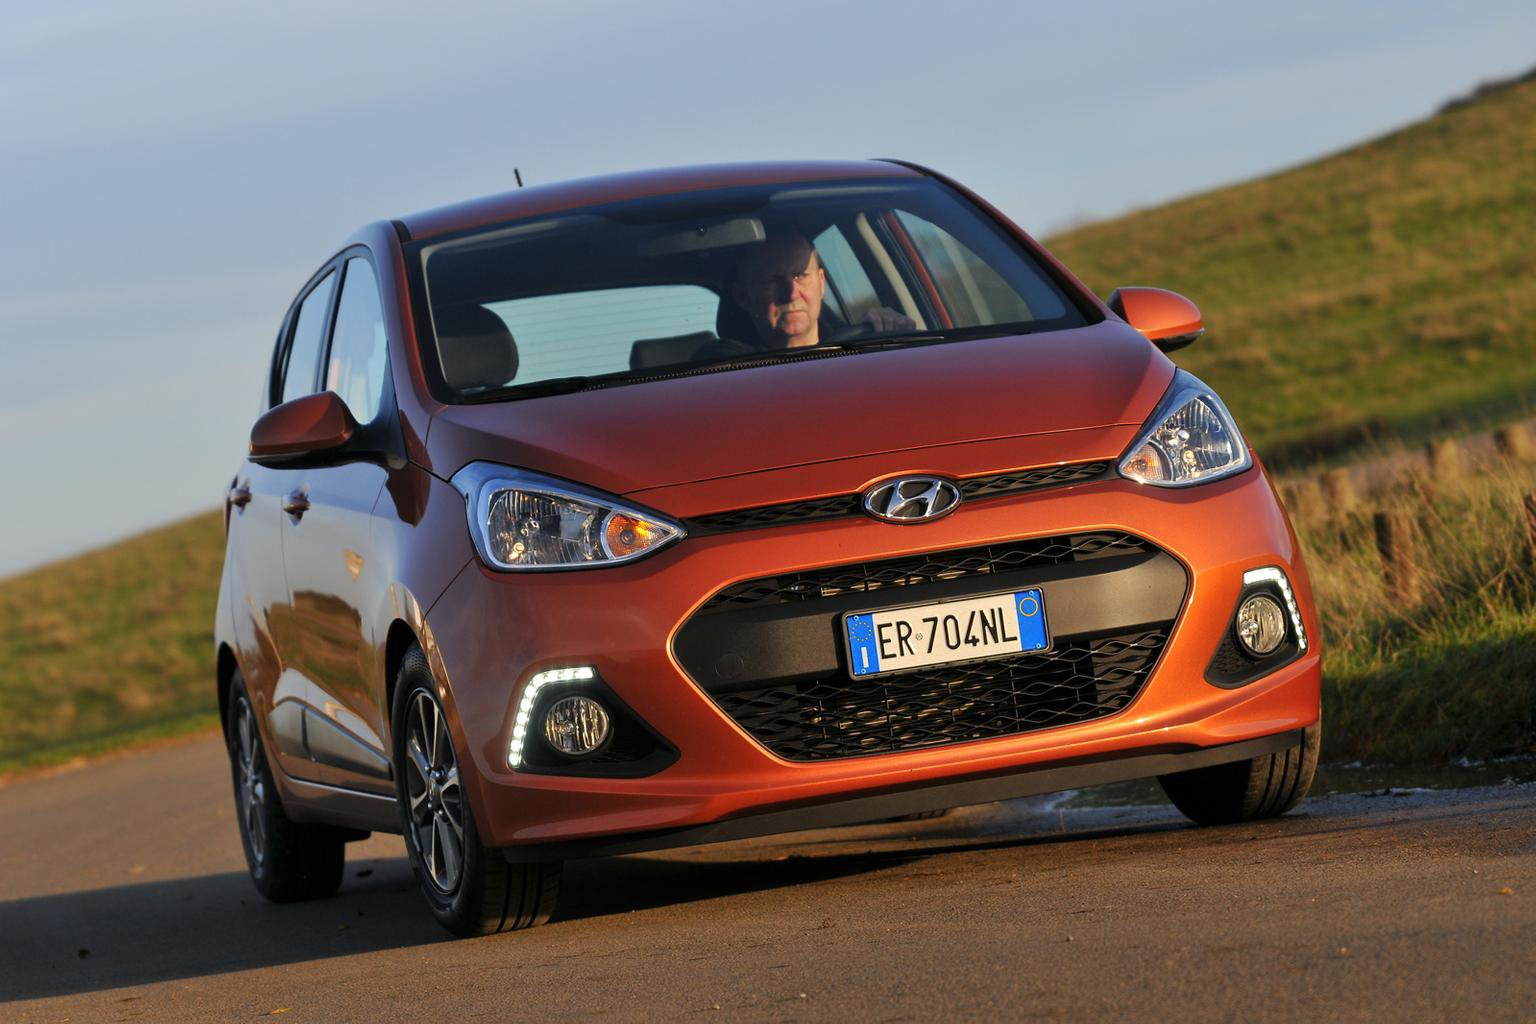 New Hyundai i10 and Mini hatch already discounted